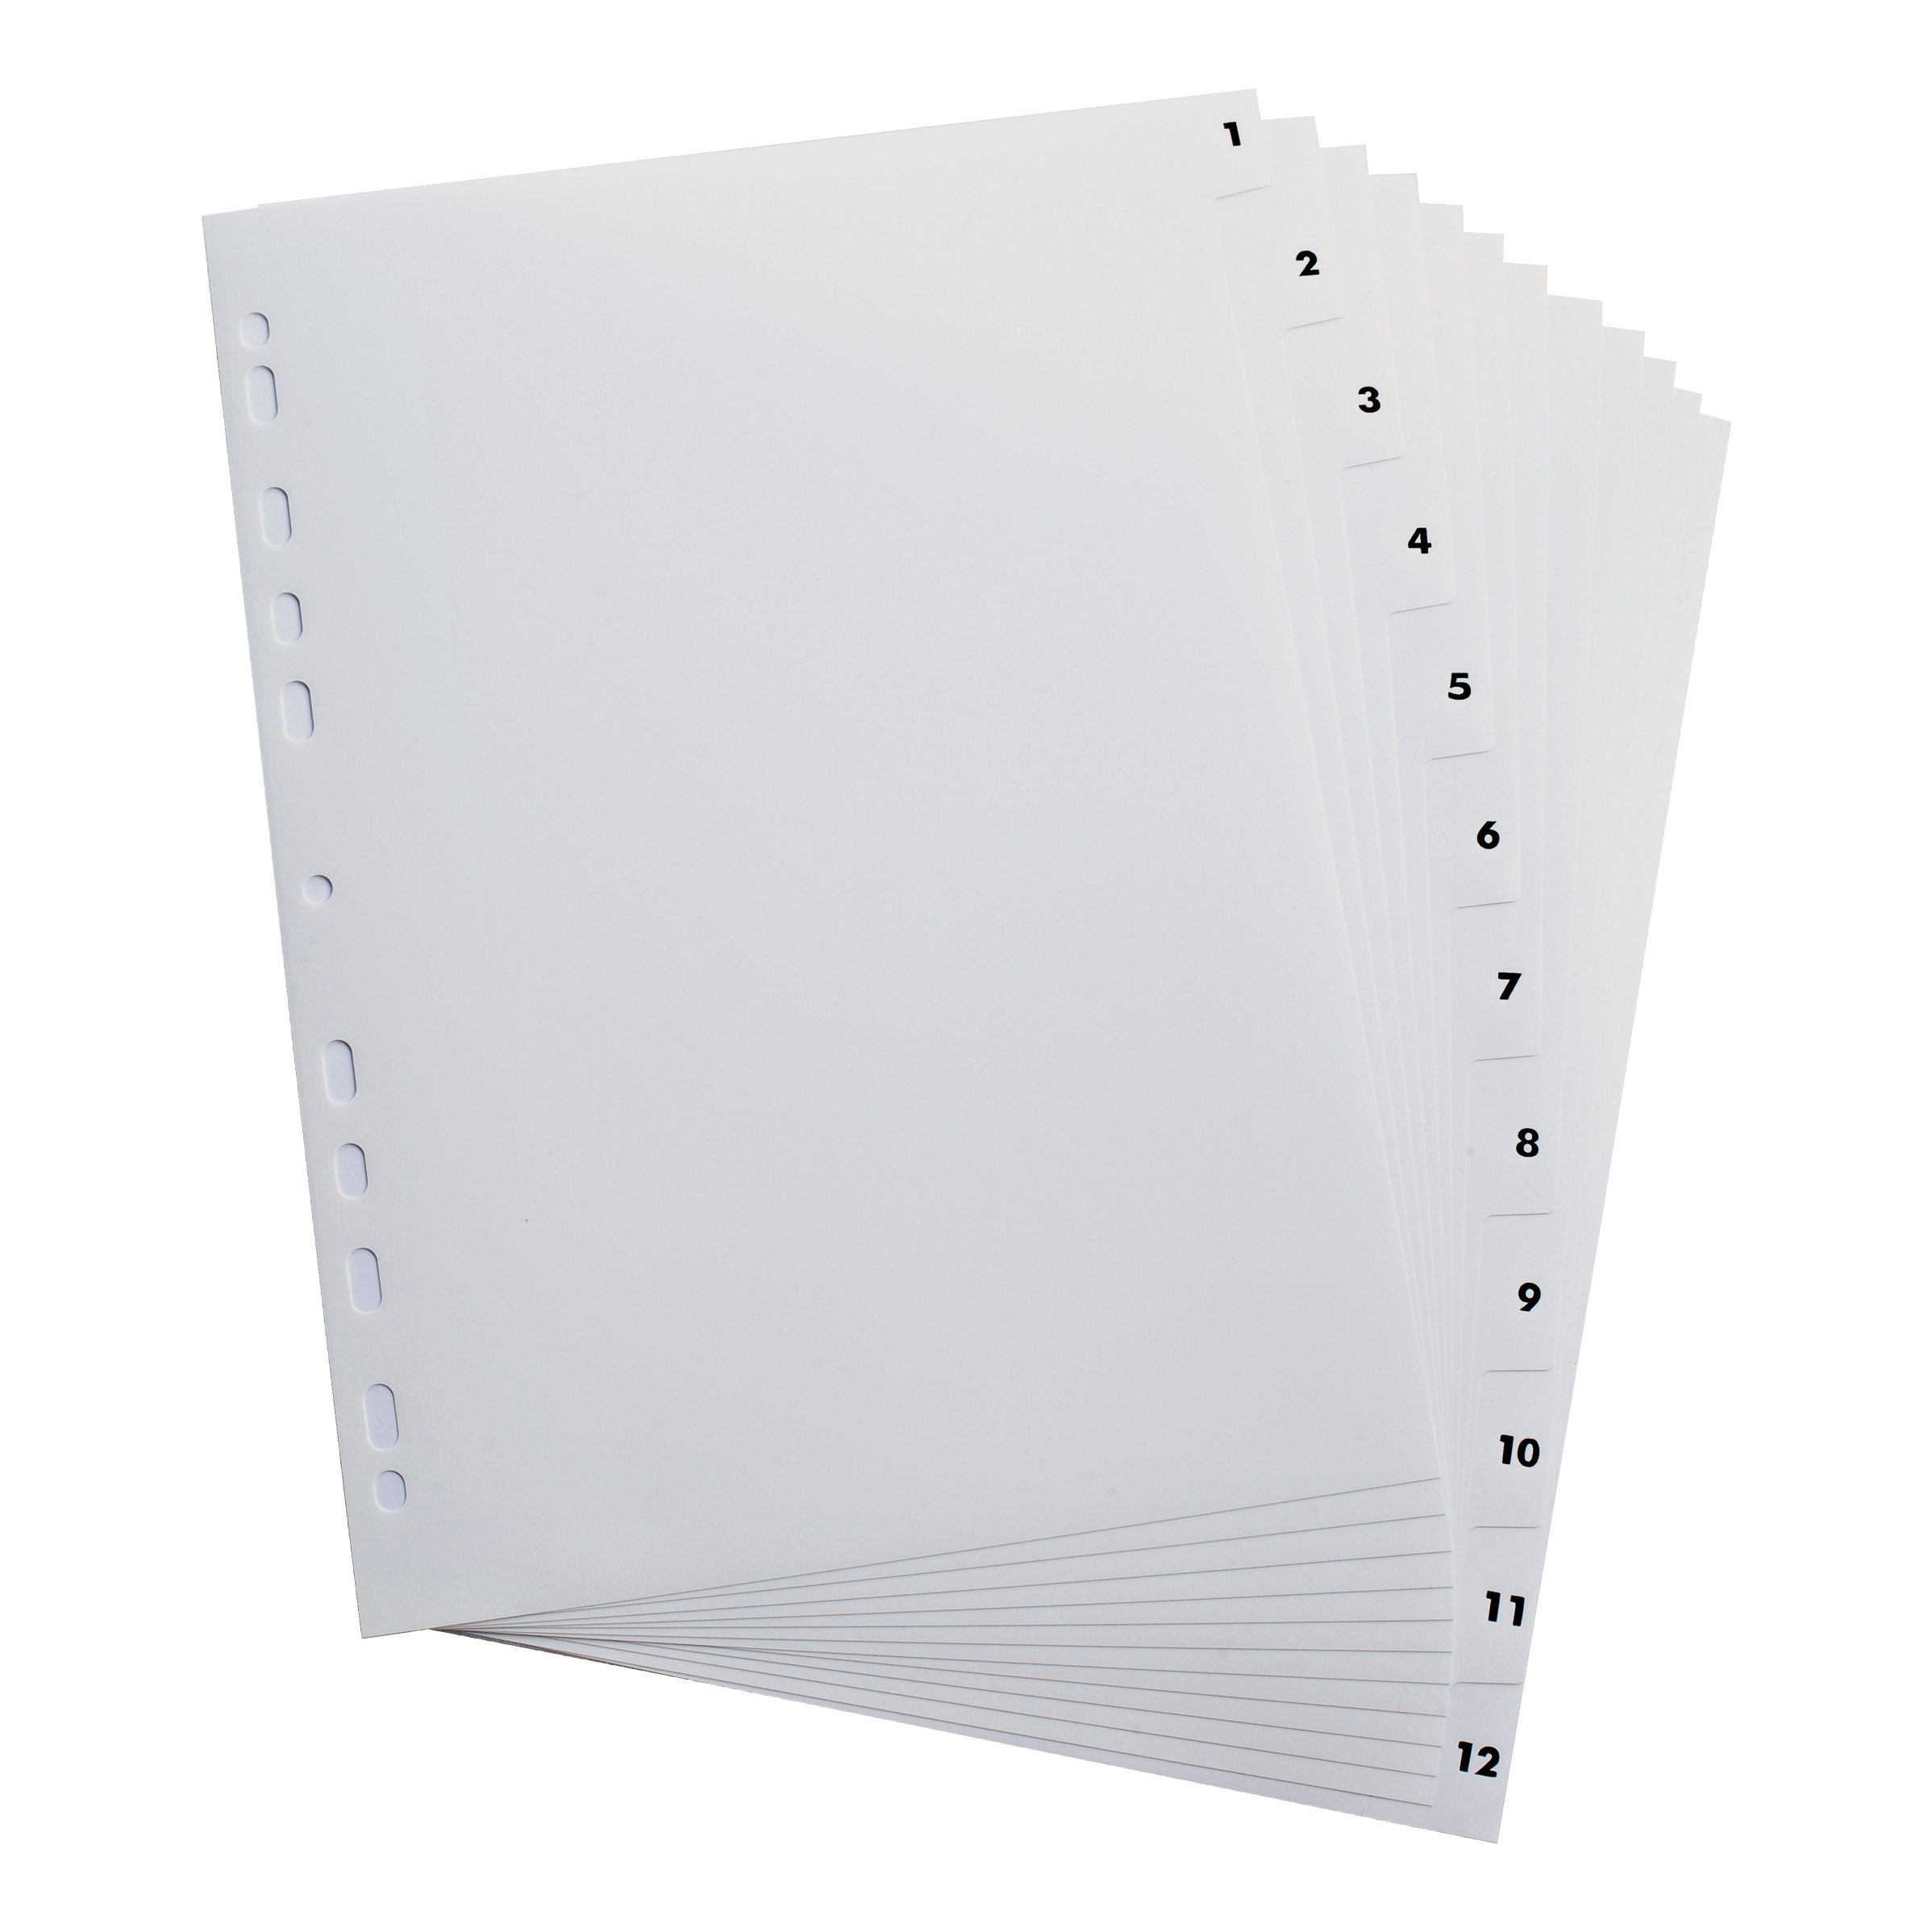 Elba Index 1-12 Polypropylene Multipunched Reinforced Holes 120 Micron A4 White Ref 100204771